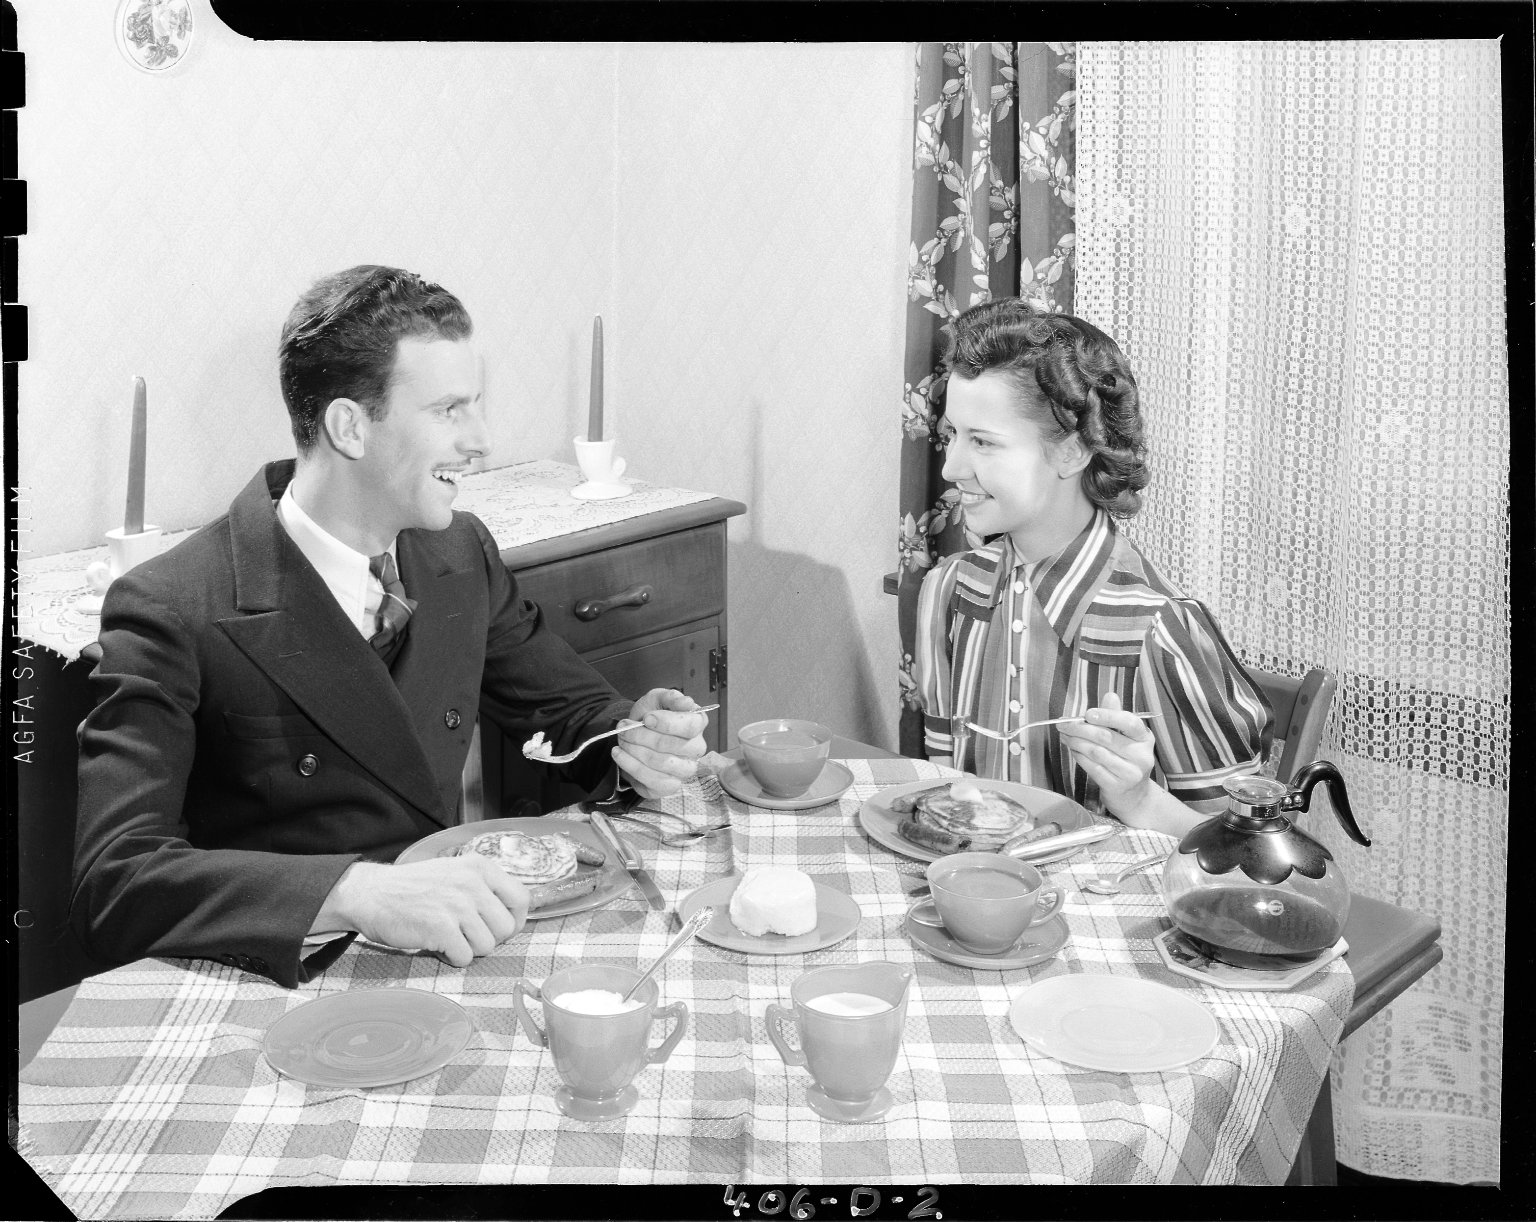 Sutherland Paper Company, man and woman at breakfast table